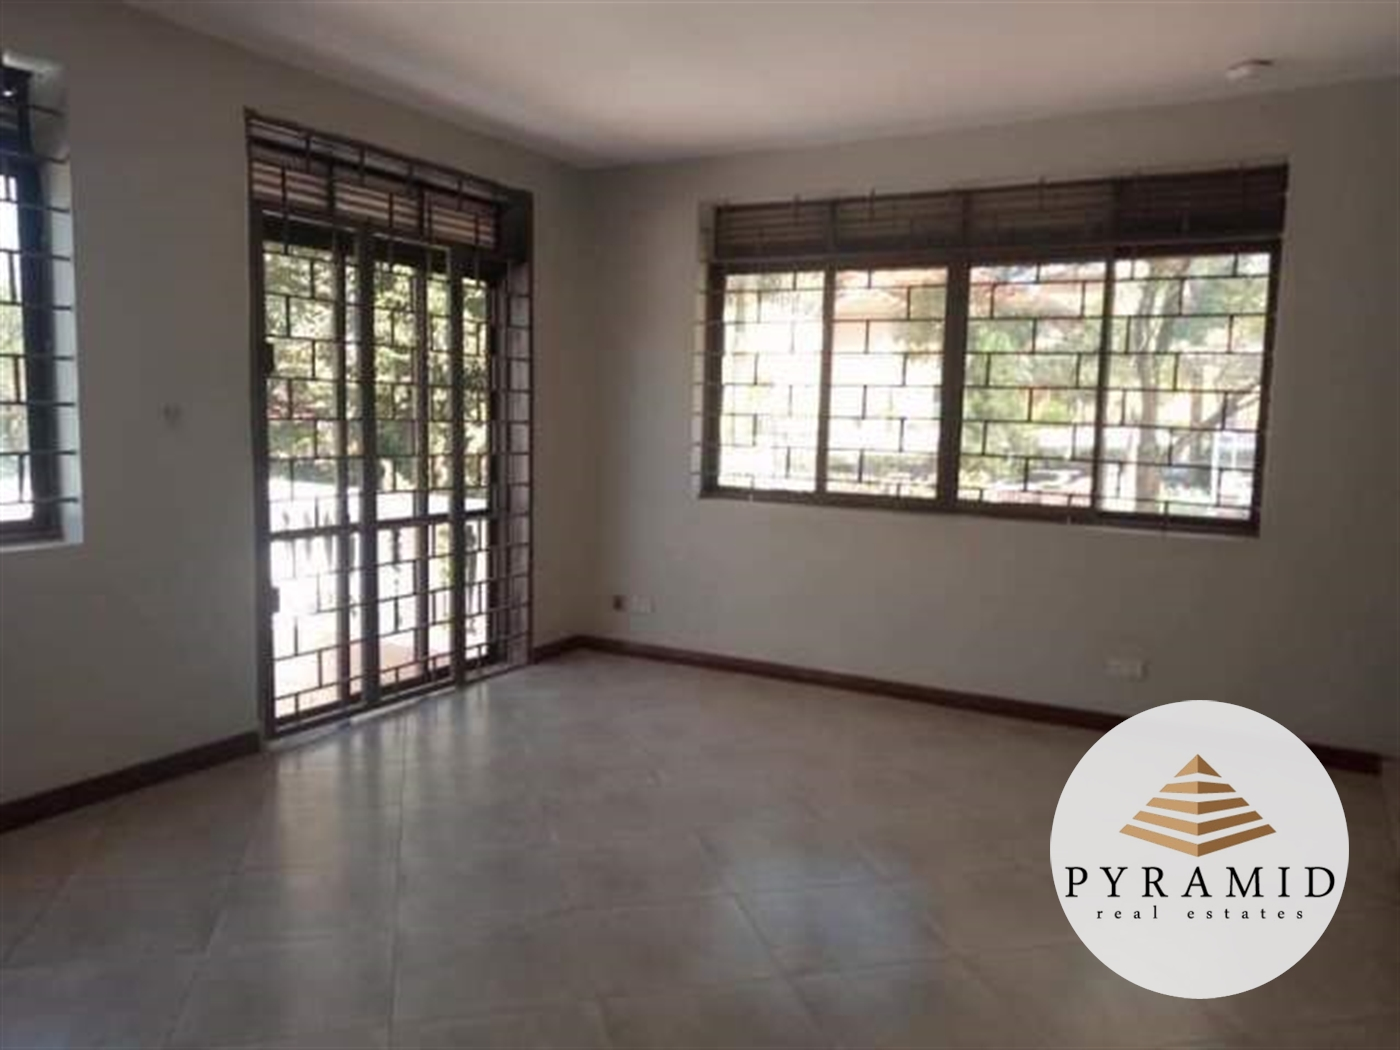 Mansion for rent in Bugolobi Kampala